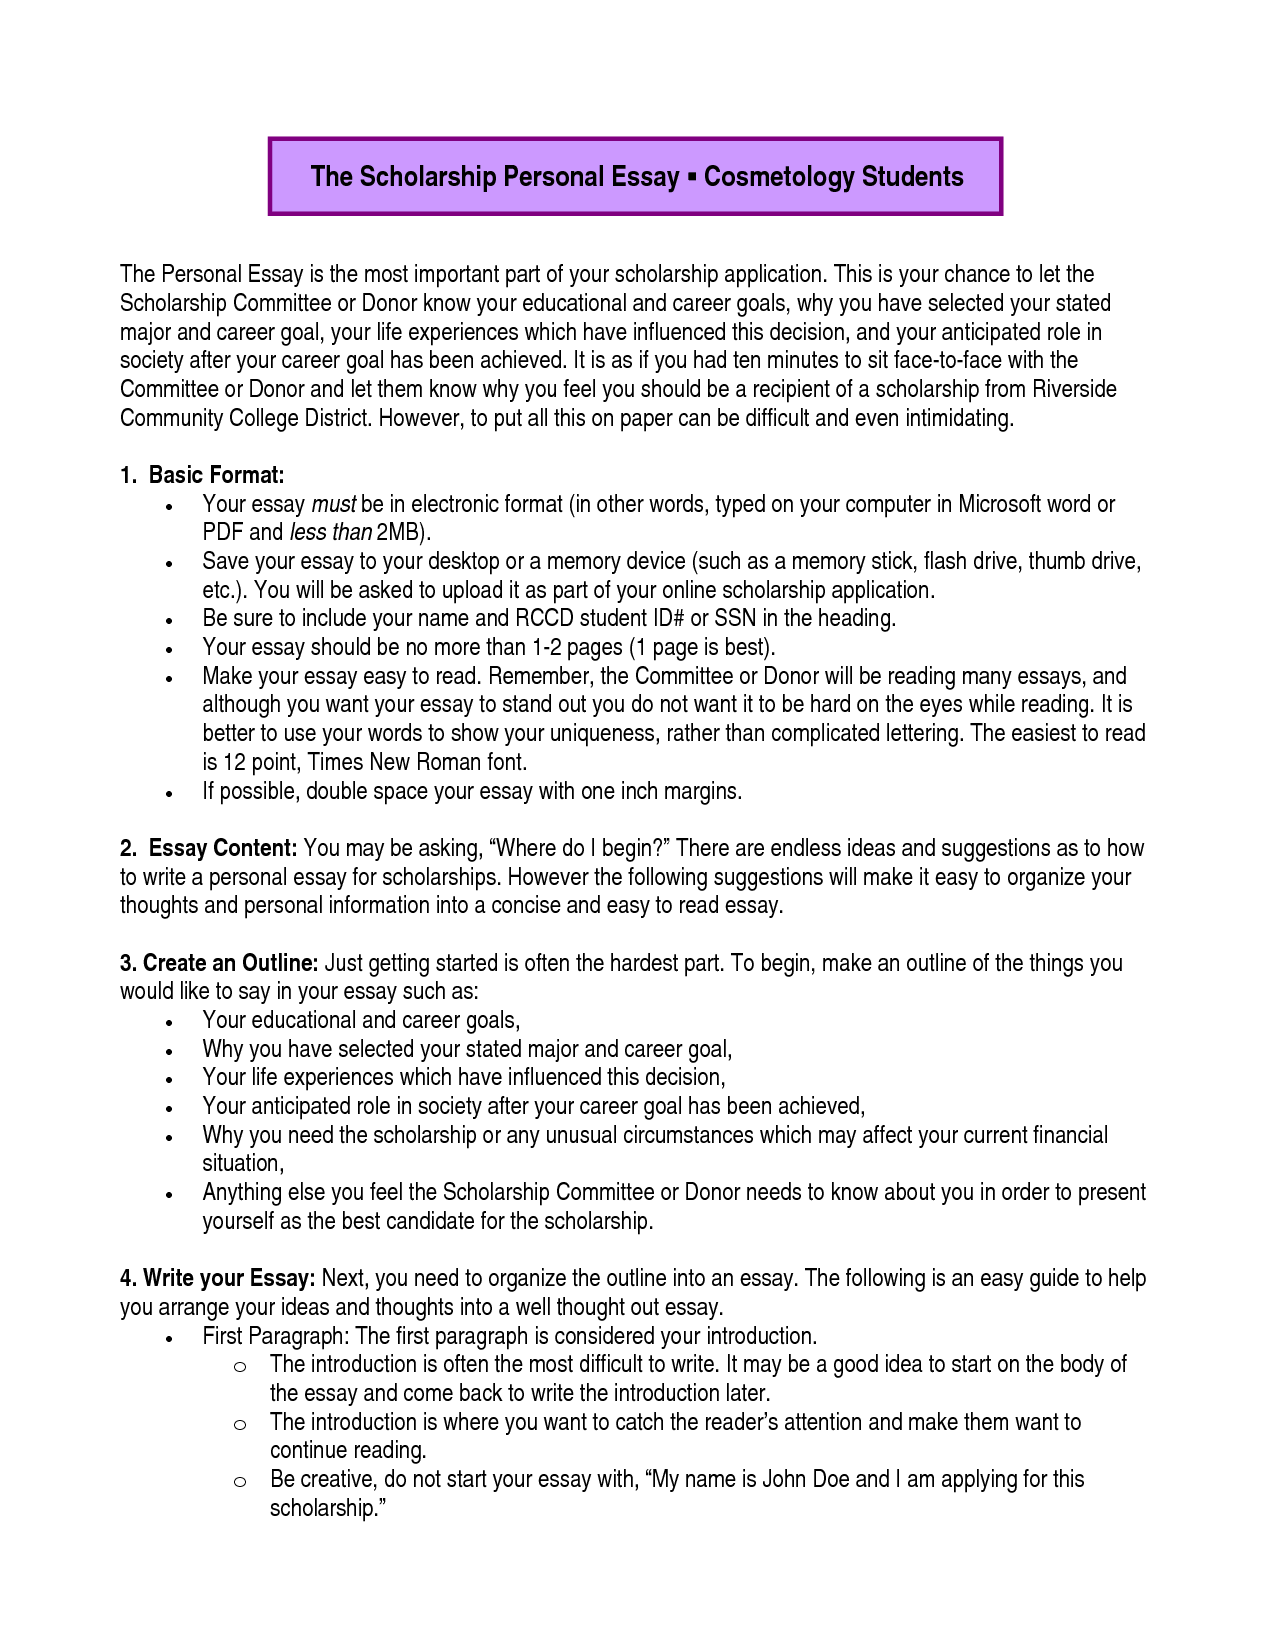 010 Future Career Goals Essay Examples And Educational Journey In Nursing Home Care Objectives Accounting Sample Business As An Cpa Mba Choicelan Welding